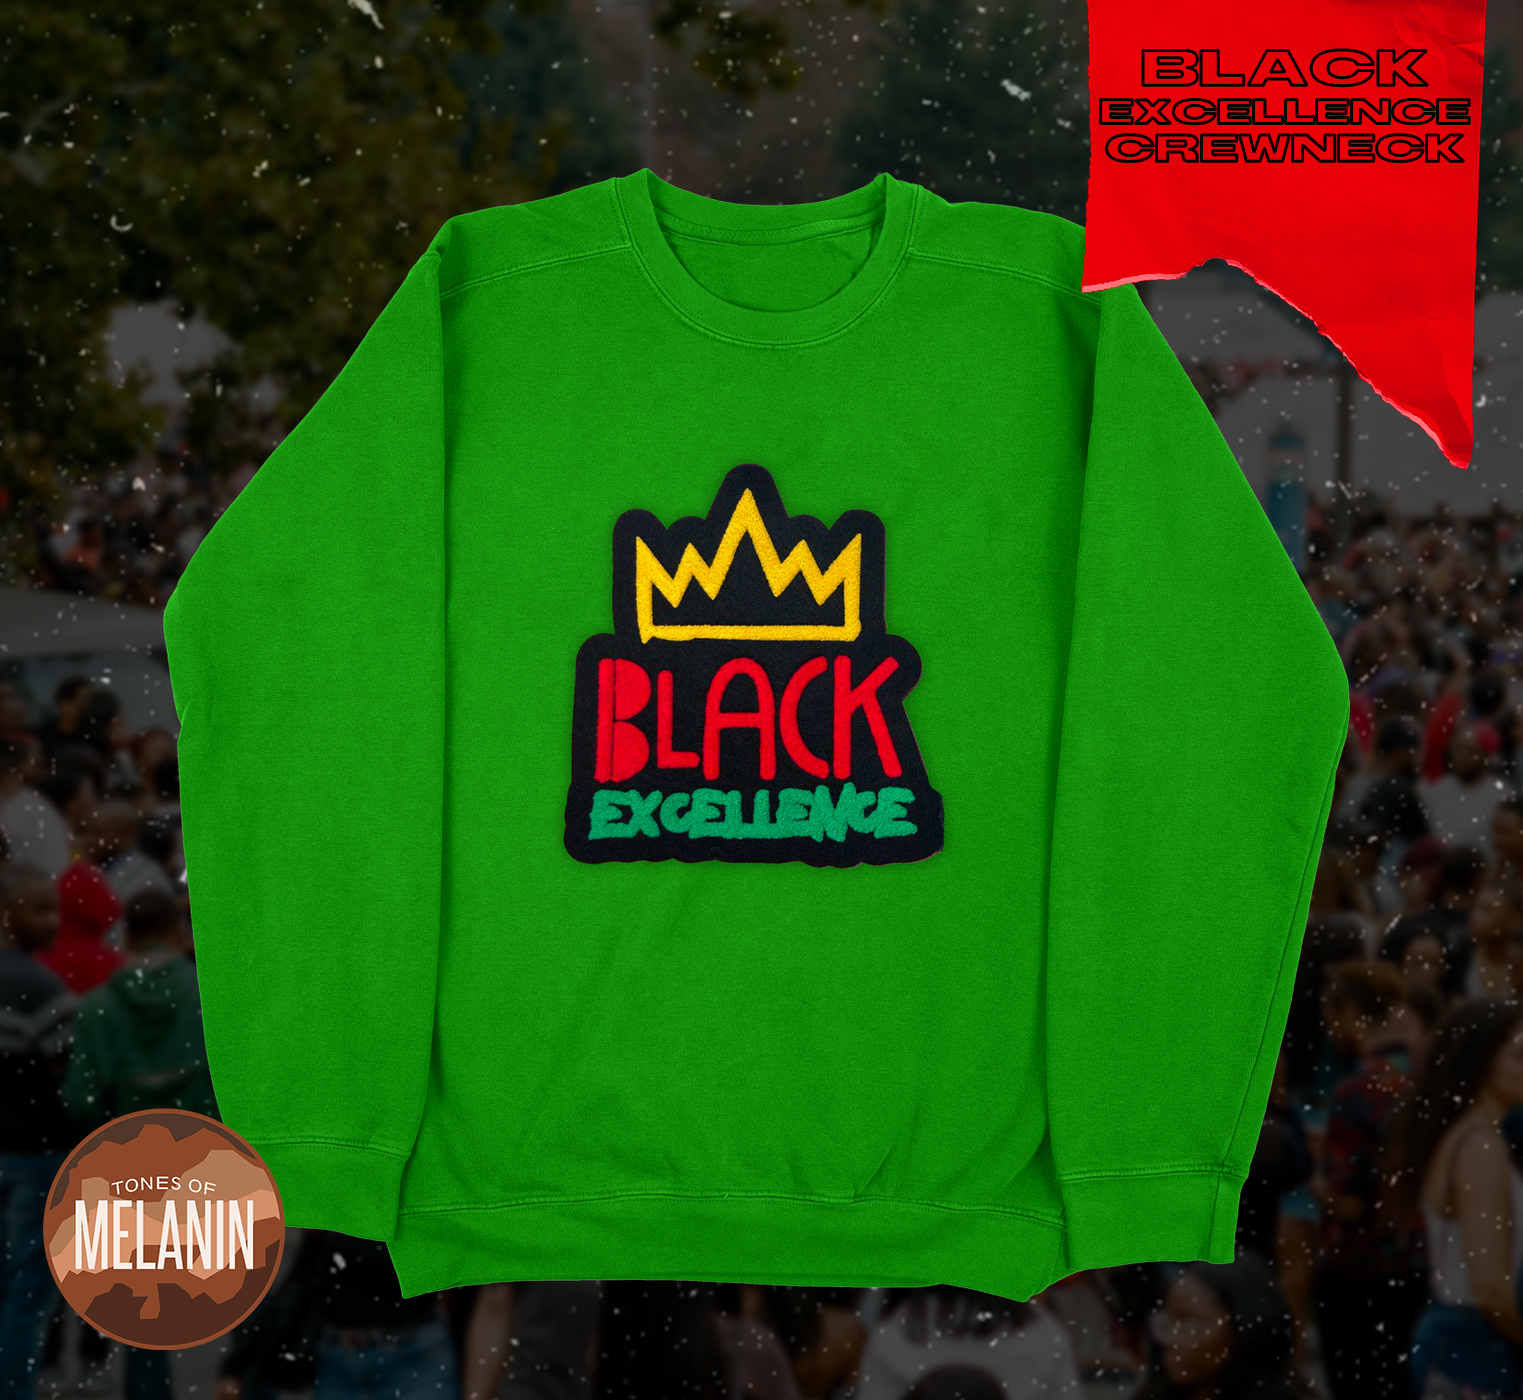 Kelly Green Black Excellence Chenille Patch Sweatshirt